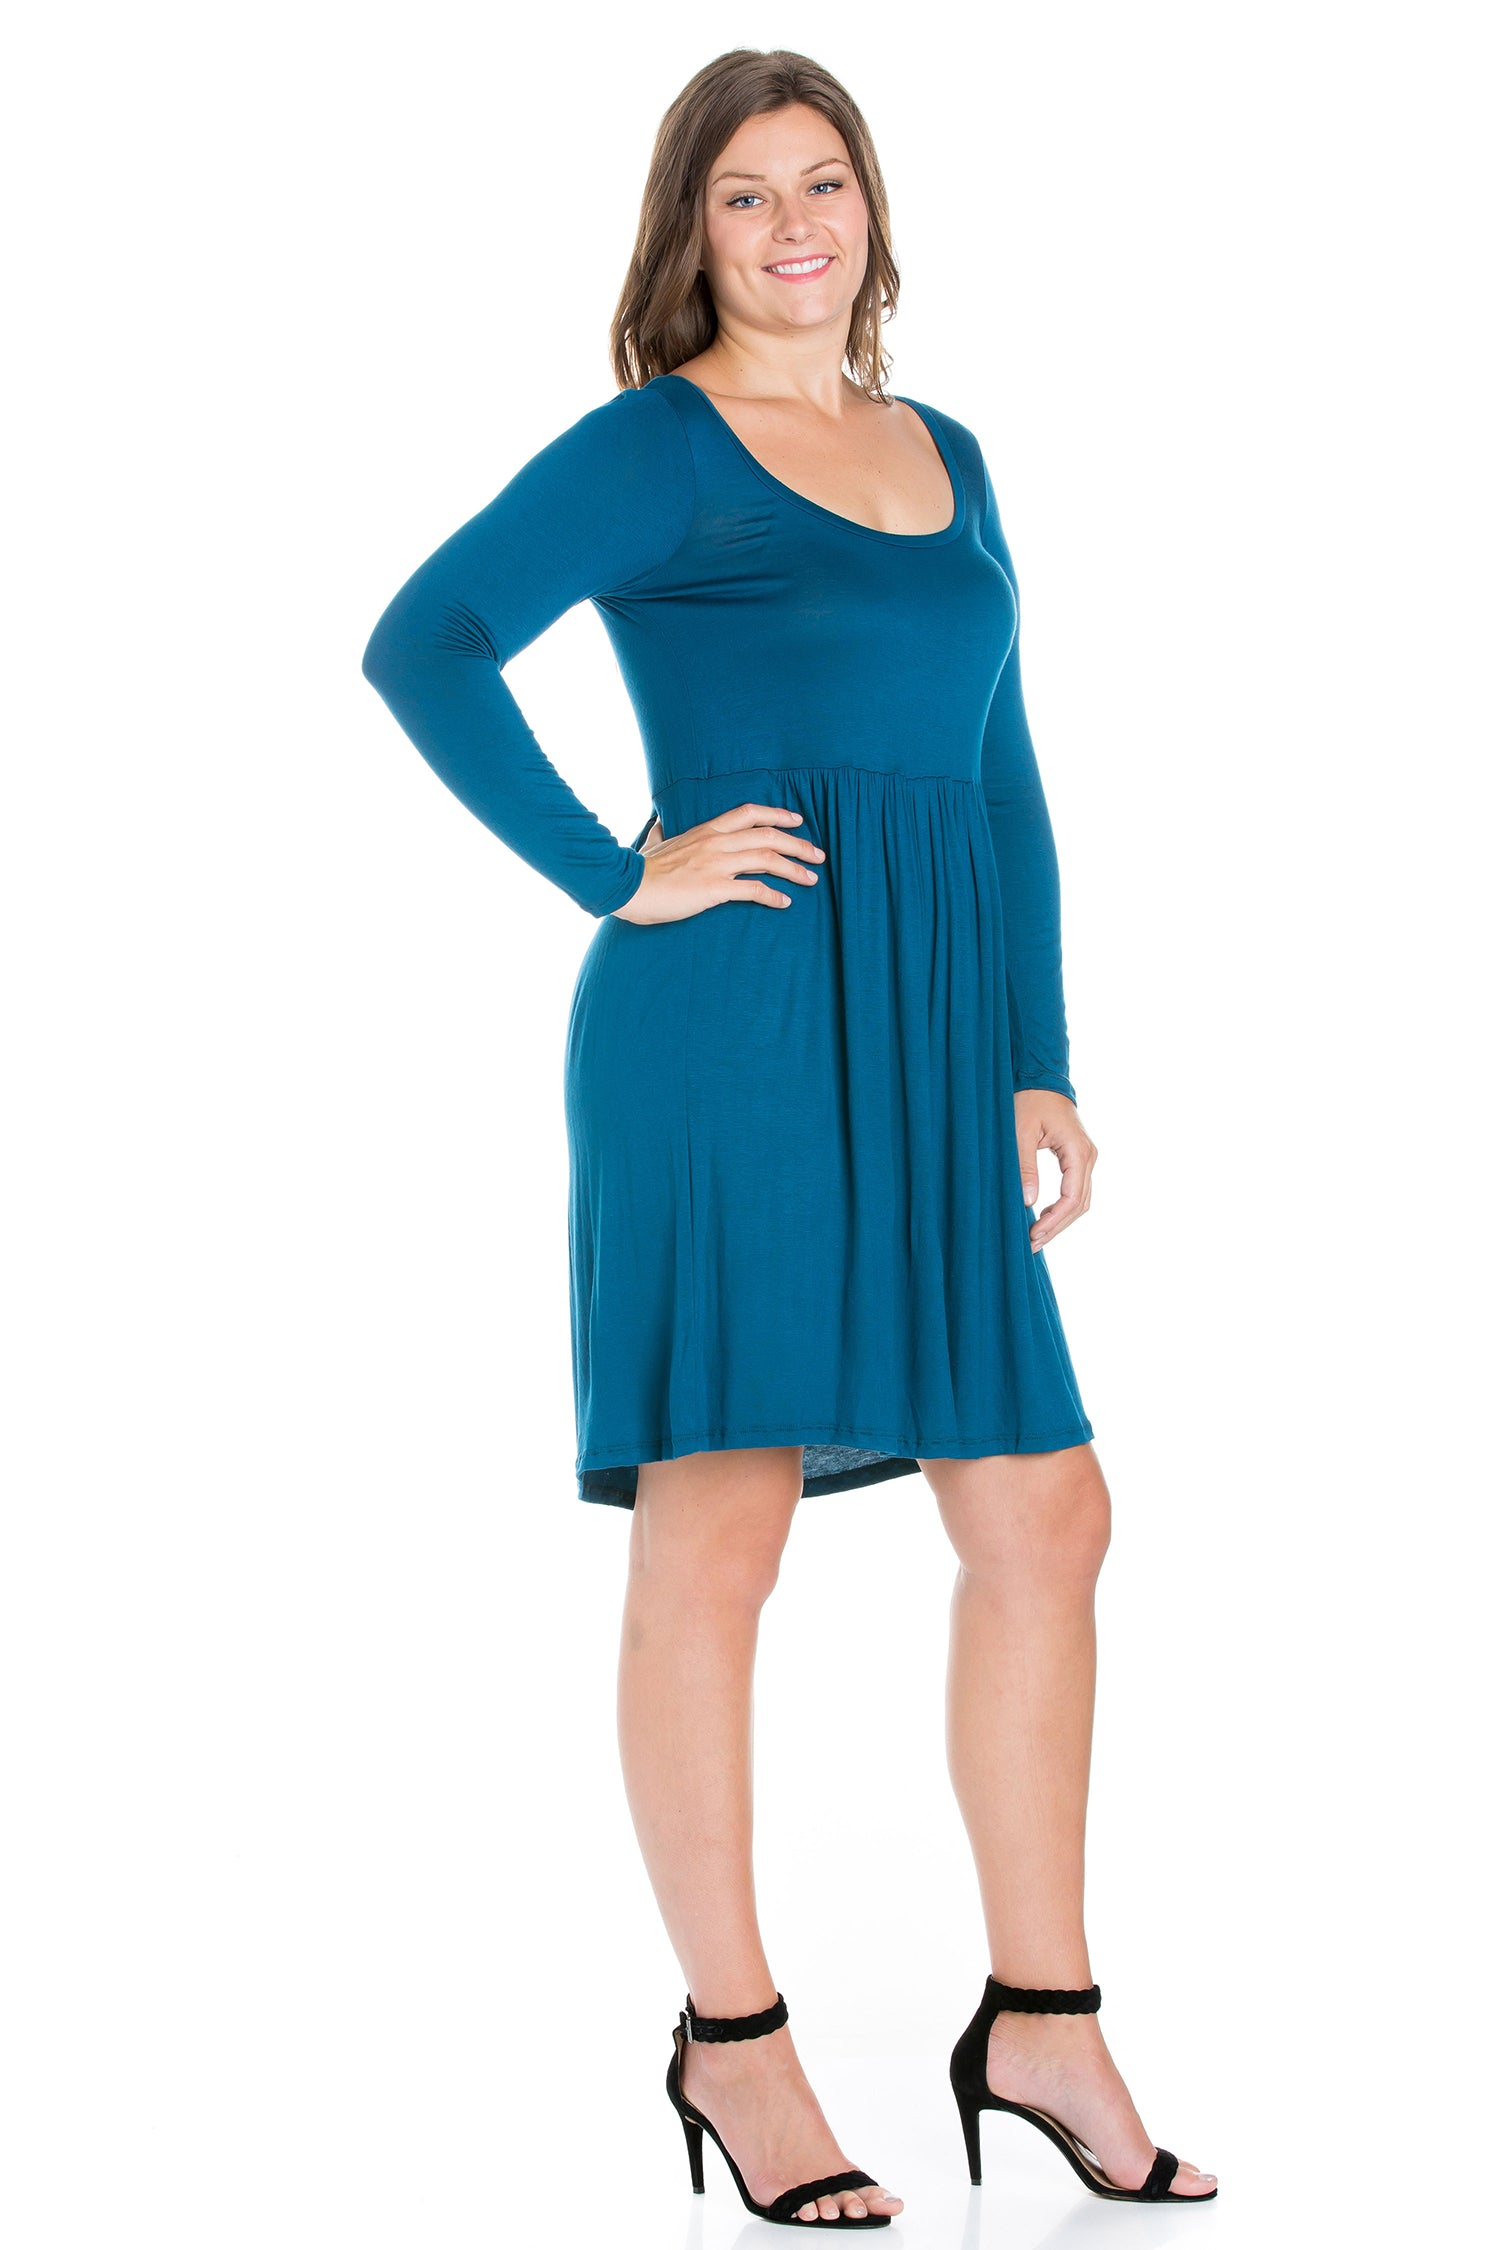 24seven Comfort Apparel Black Floral Print Long Sleeve Pleated Plus Size Dress-DRESSES-24Seven Comfort Apparel-TEAL-1X-24/7 Comfort Apparel